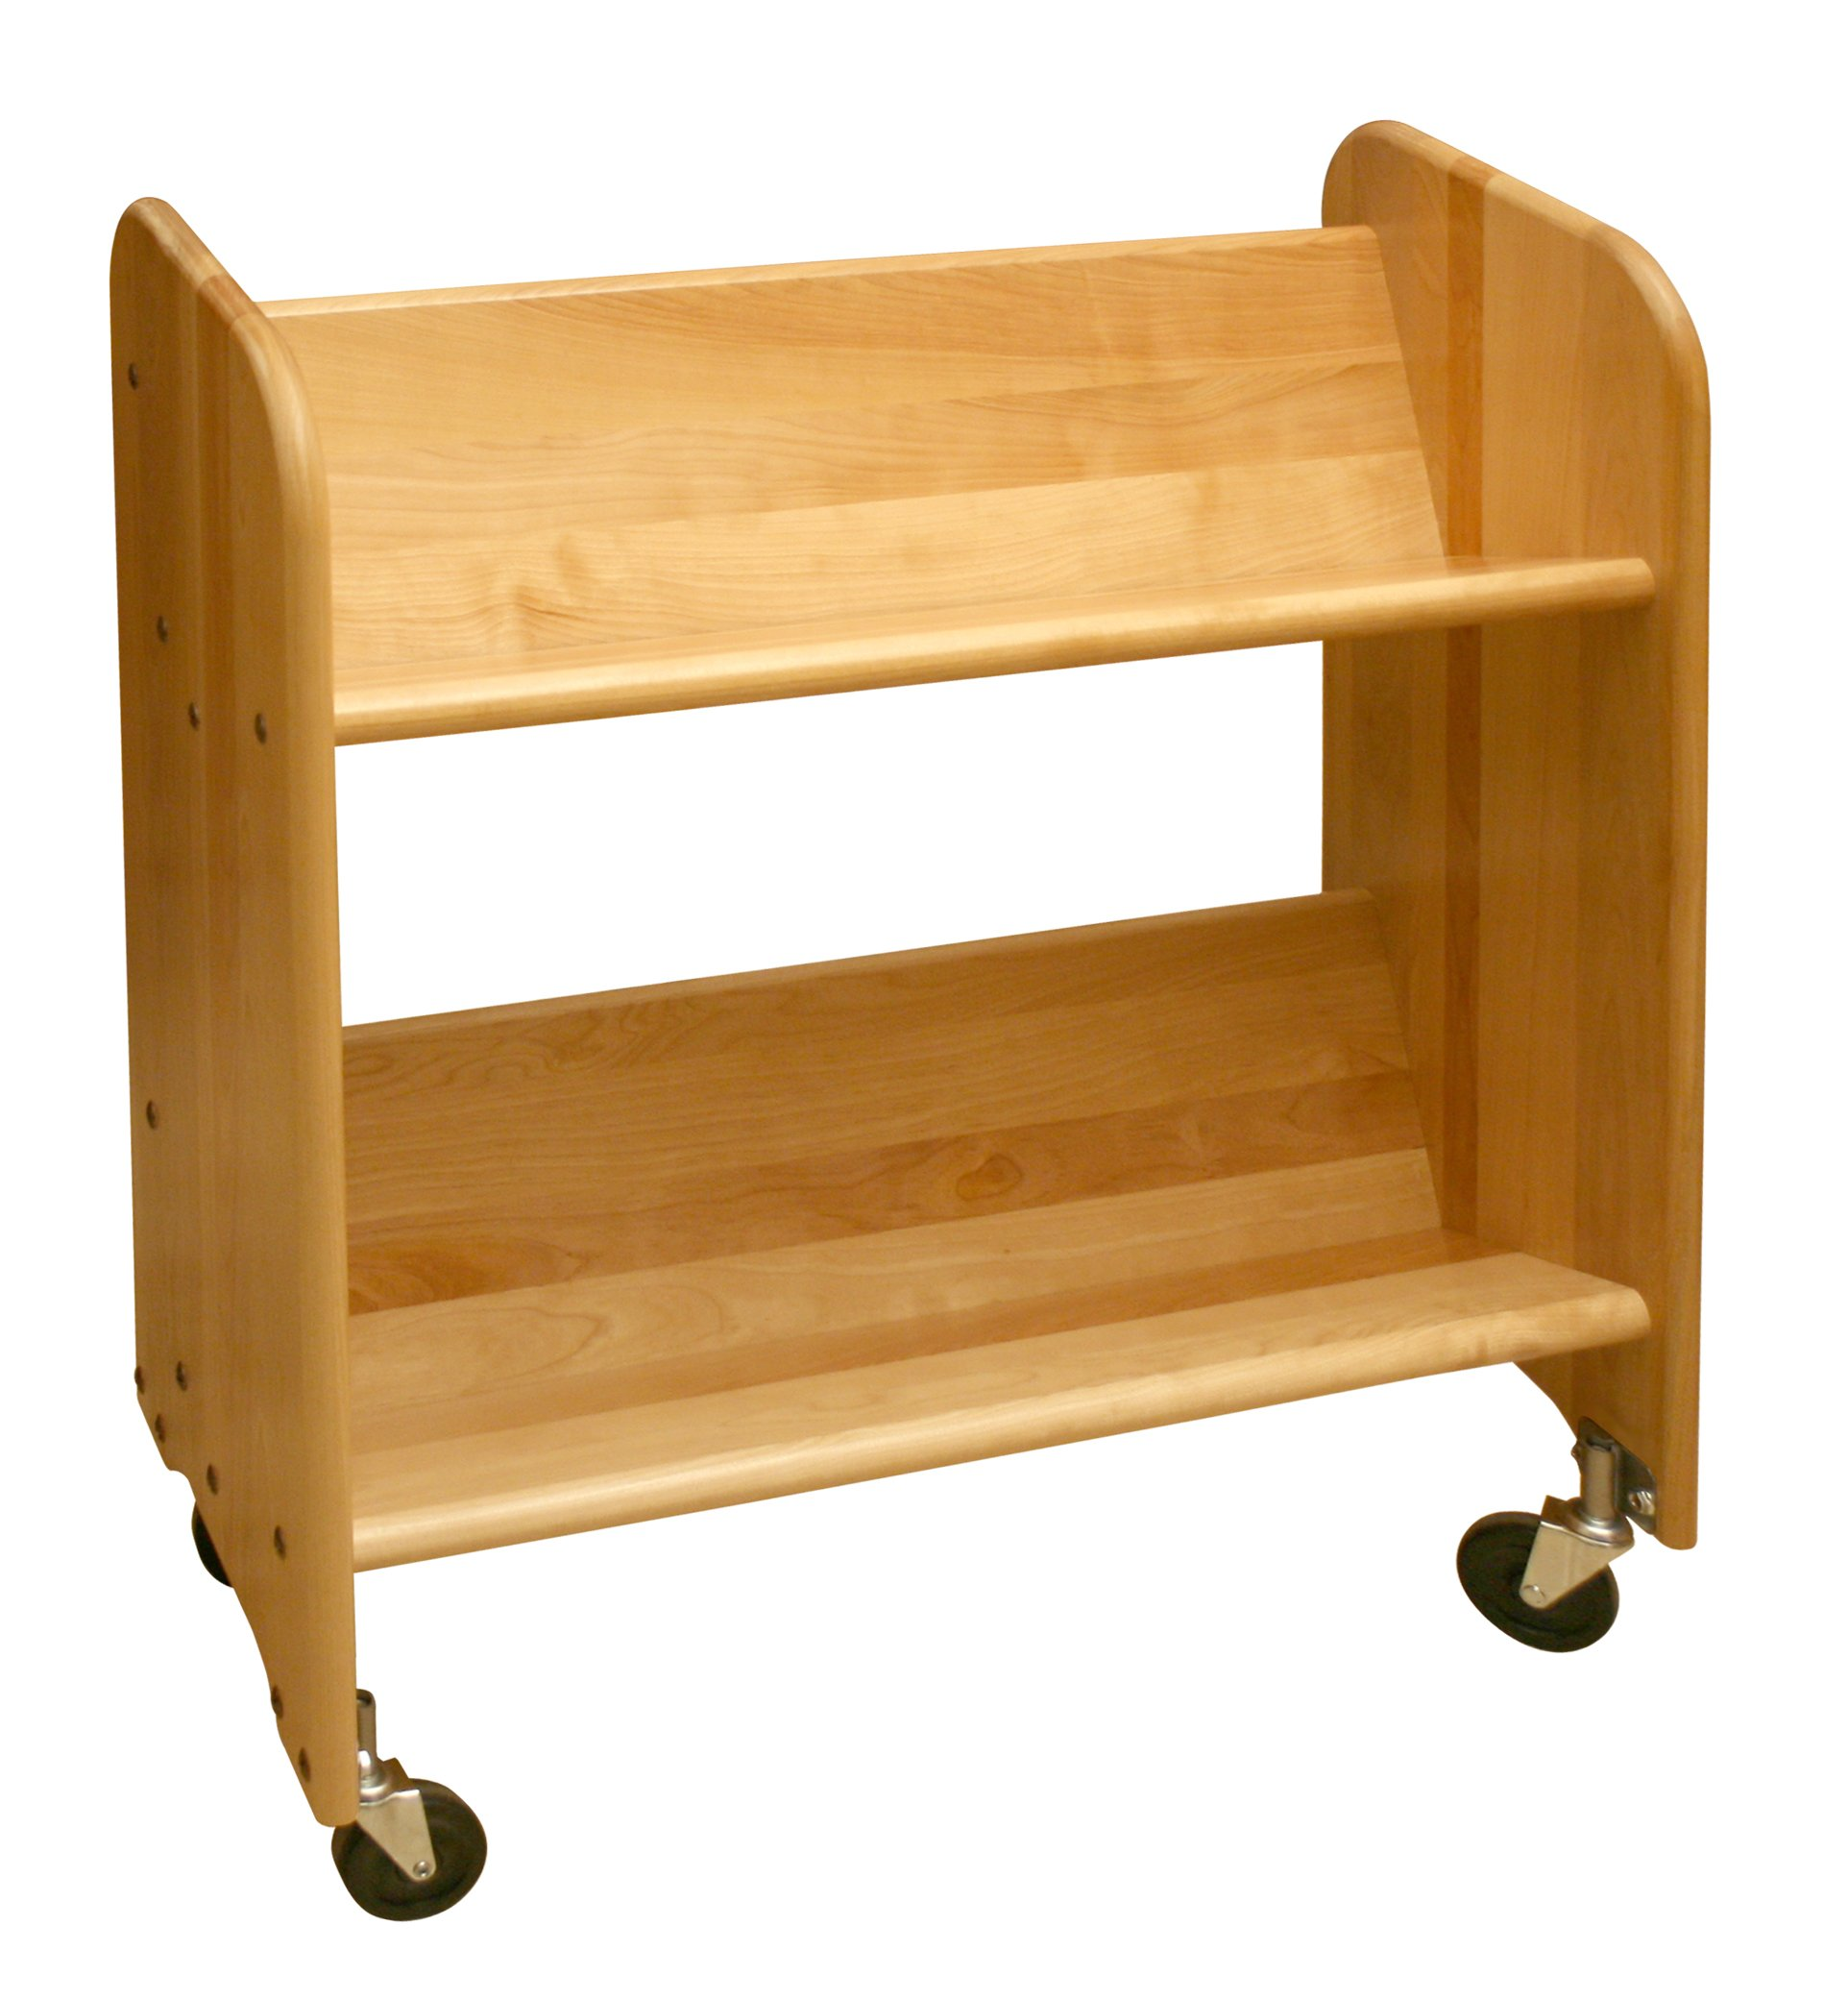 Catskill Craftsmen Bookmaster Rack with Tilted Shelves, Natural Birch by Catskill Craftsman